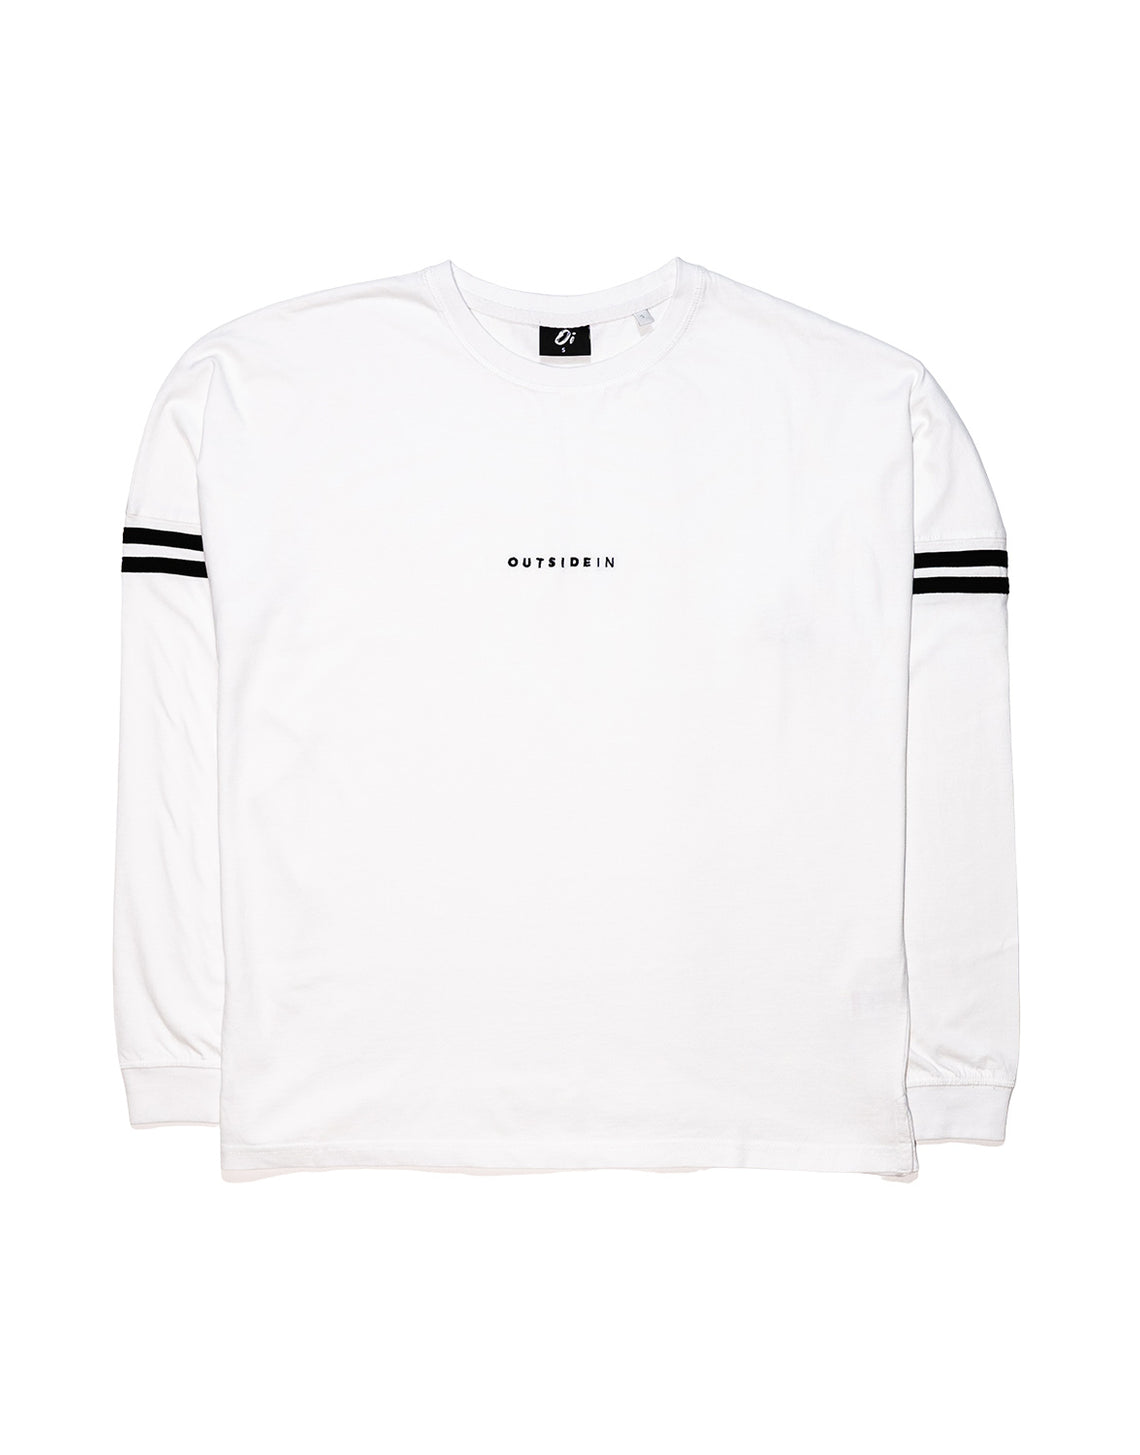 White Long-Sleeve OutsideIn Embroidered T-shirt - OutsideIn